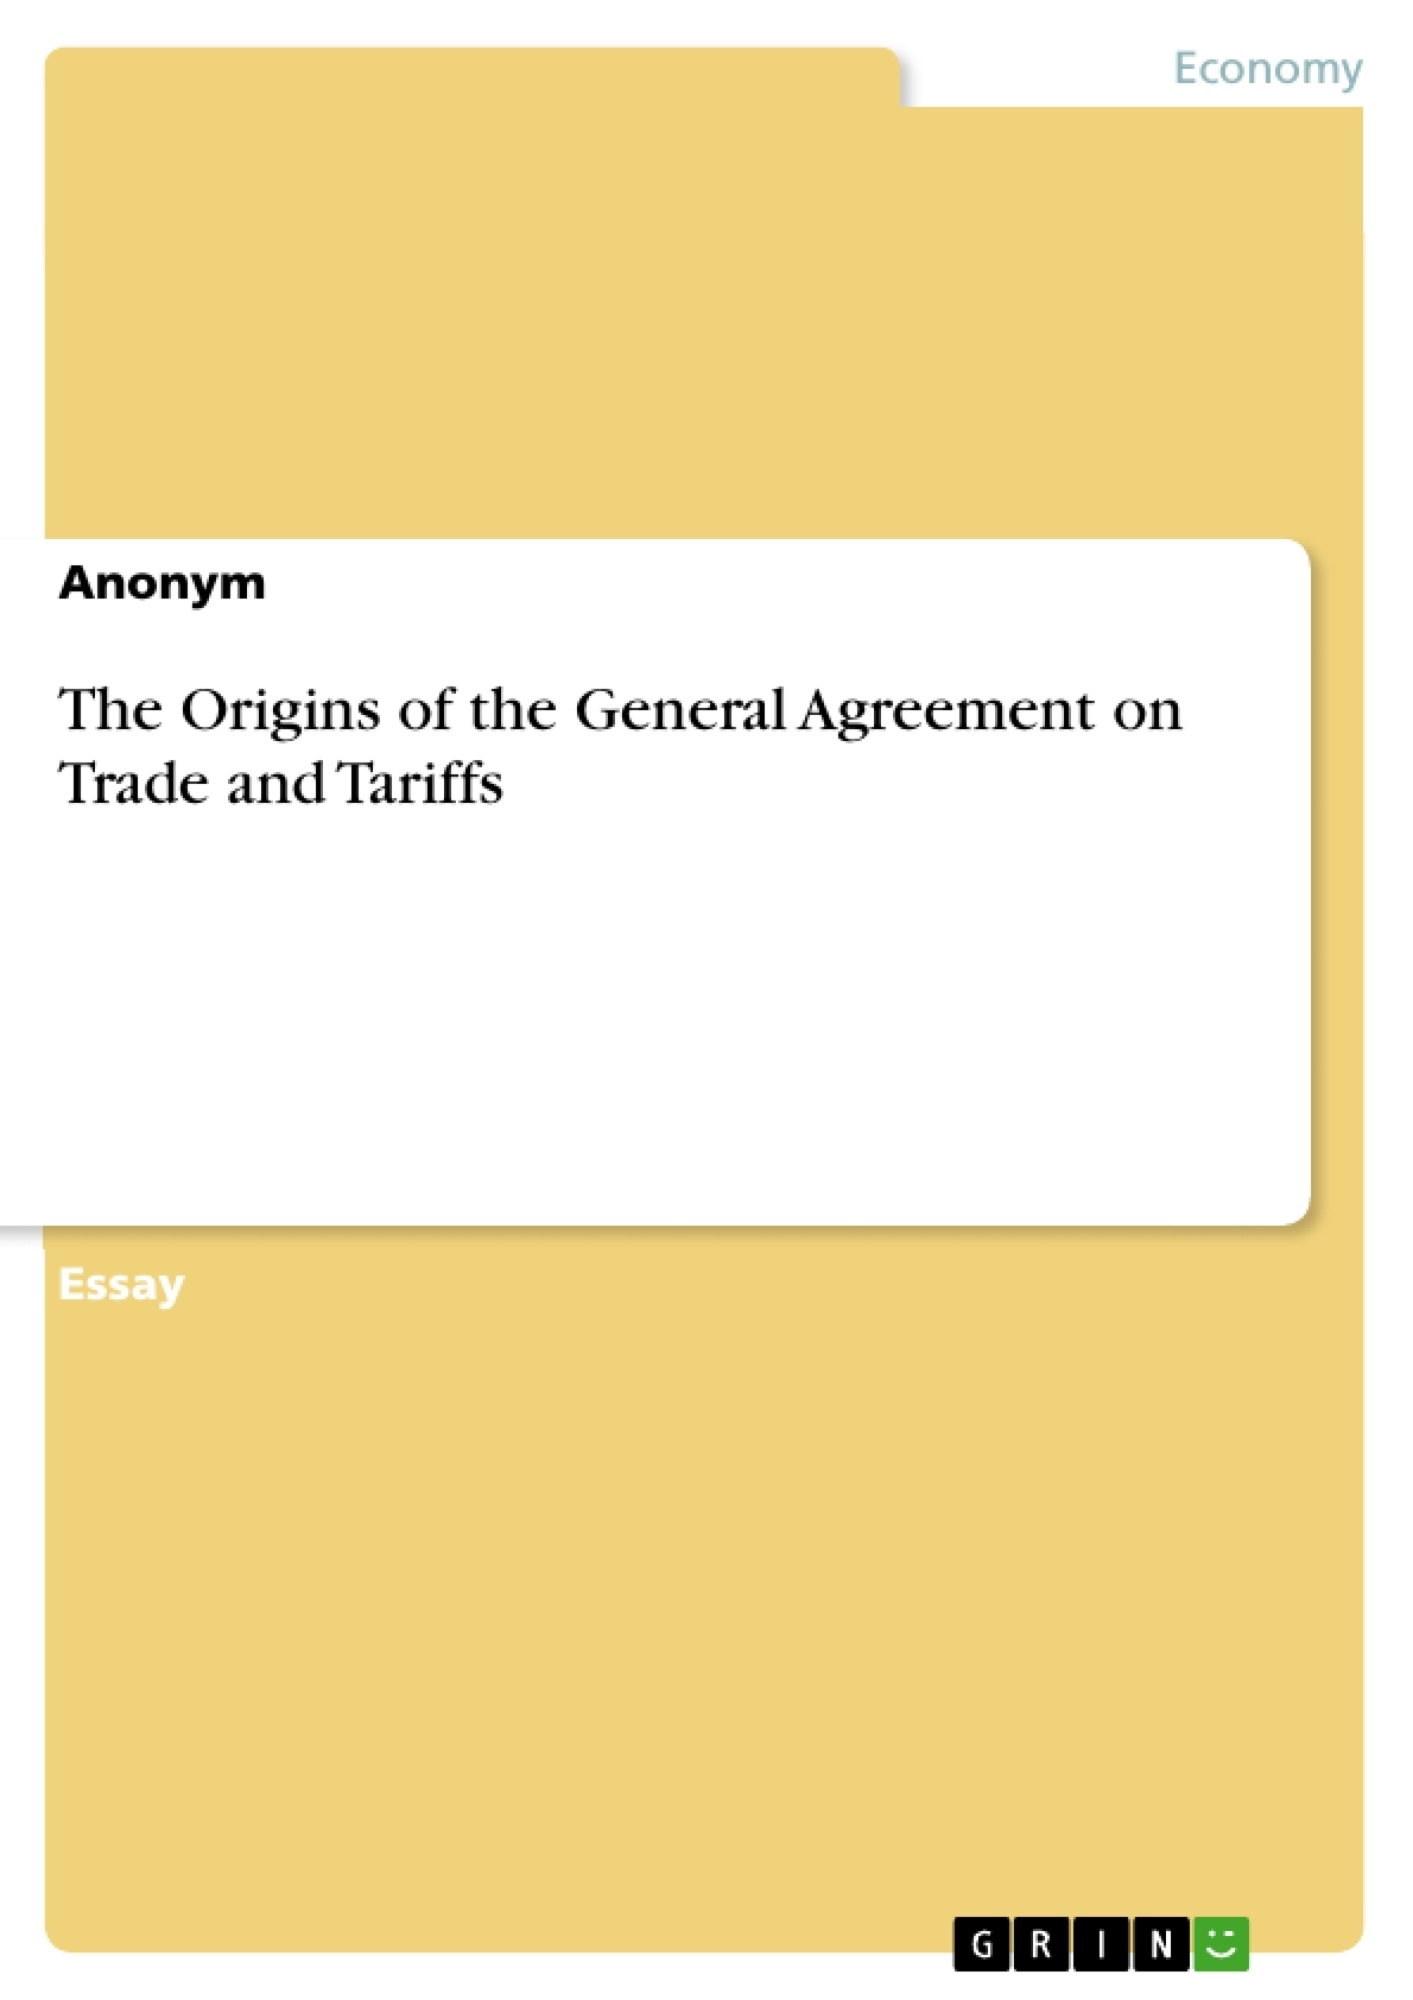 Title: The Origins of the General Agreement on Trade and Tariffs